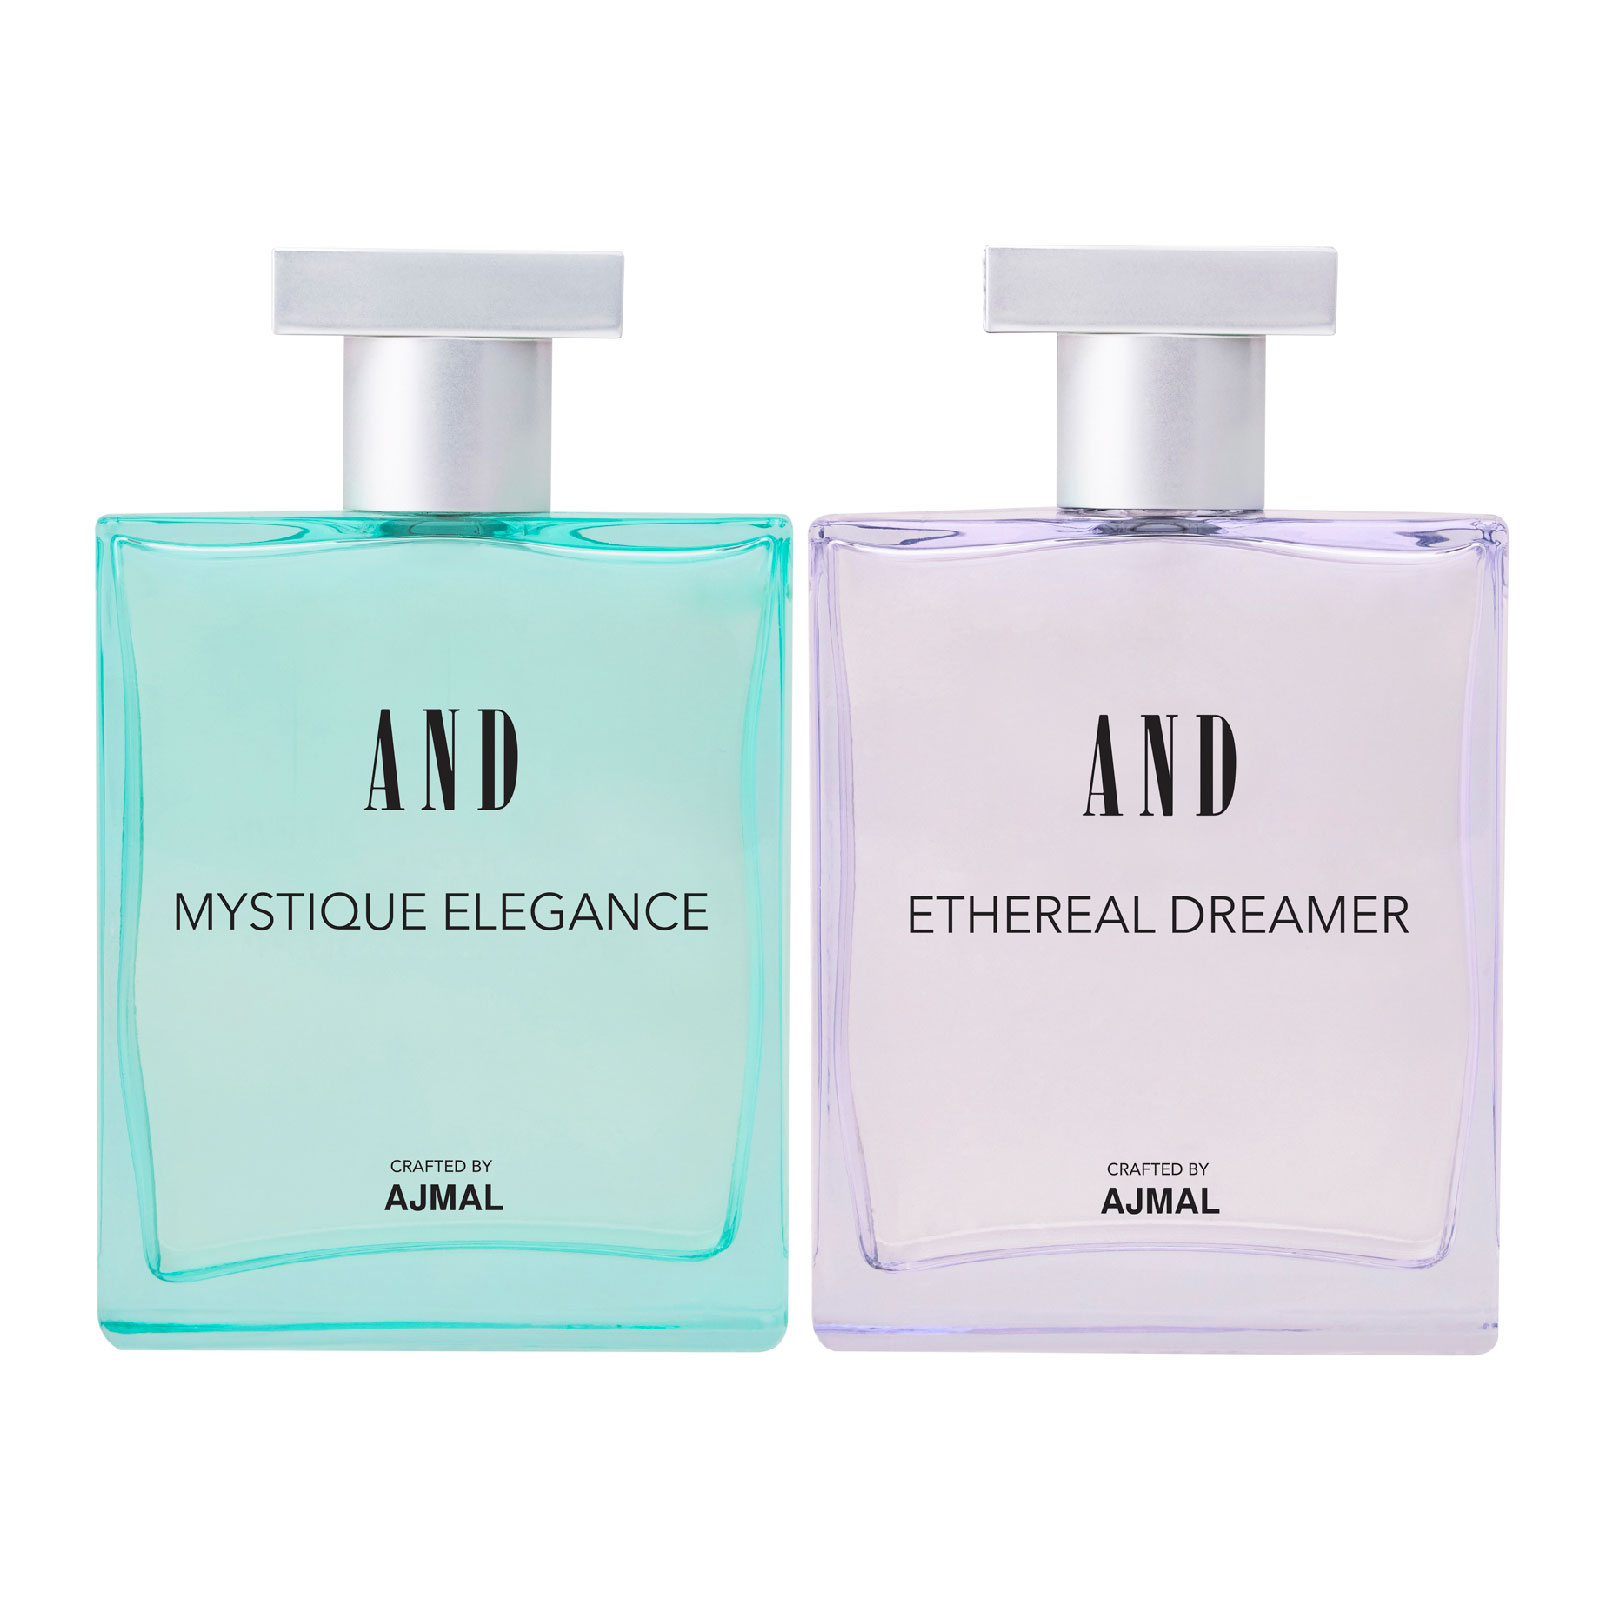 AND Crafted By Ajmal | AND Mystique Elegance & Ethereal Dreamer Pack of 2 EDP 50ML each for Women Crafted by Ajmal + 2 Parfum Testers